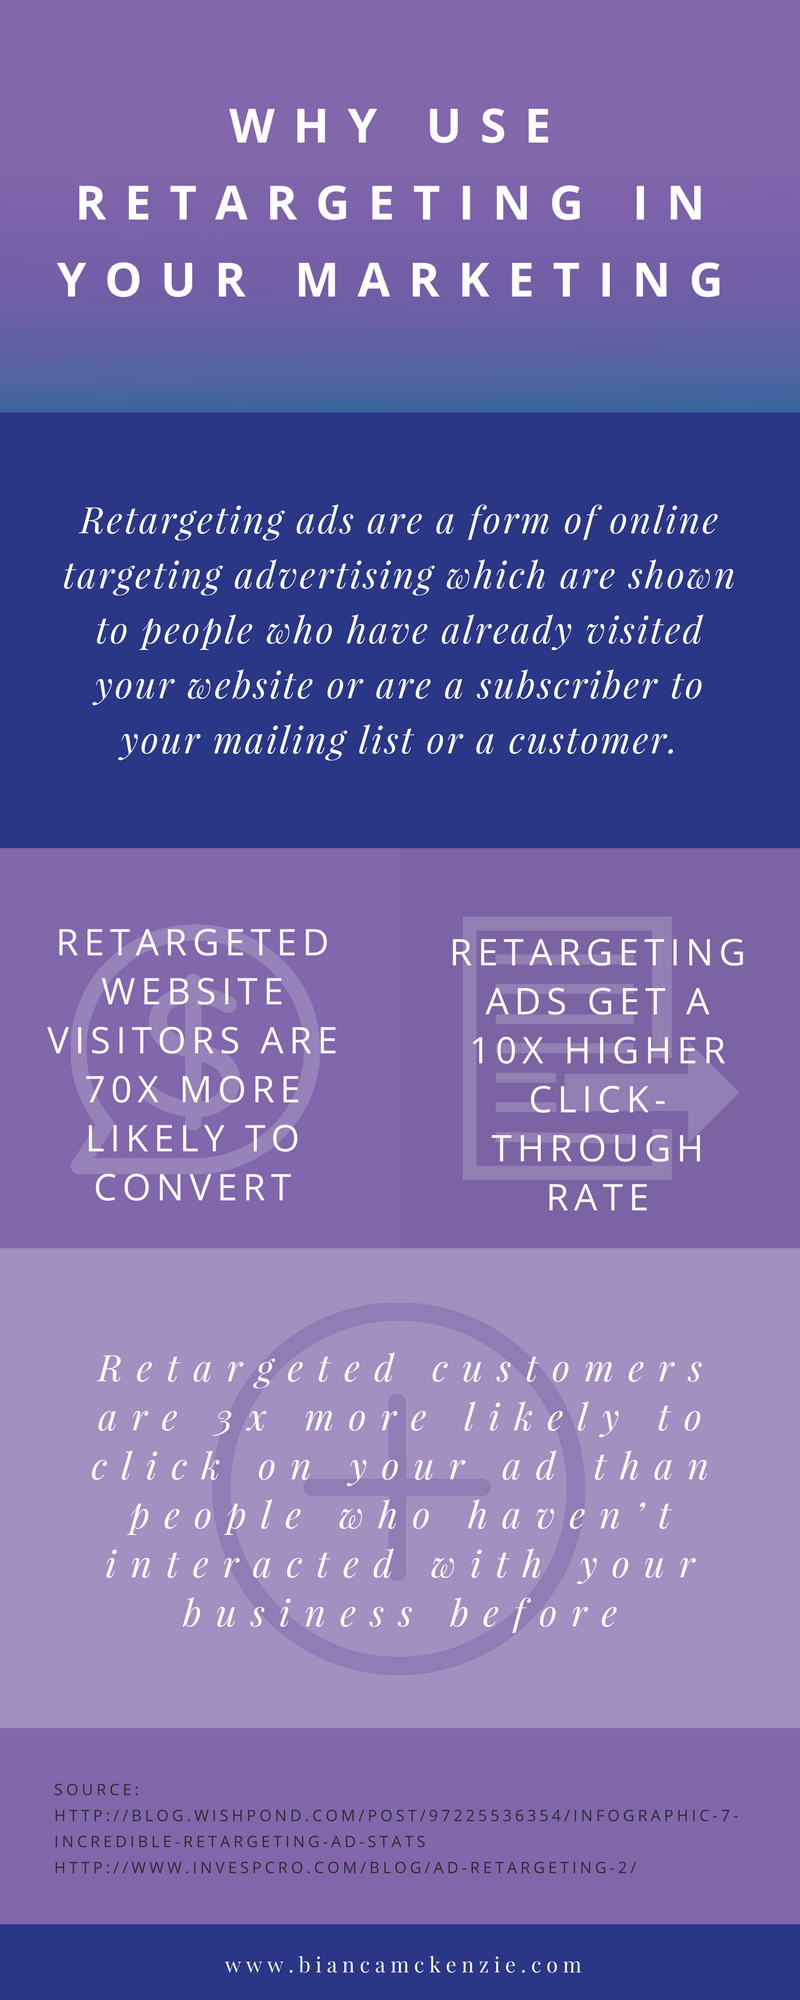 why you should use retargeting in your marketing